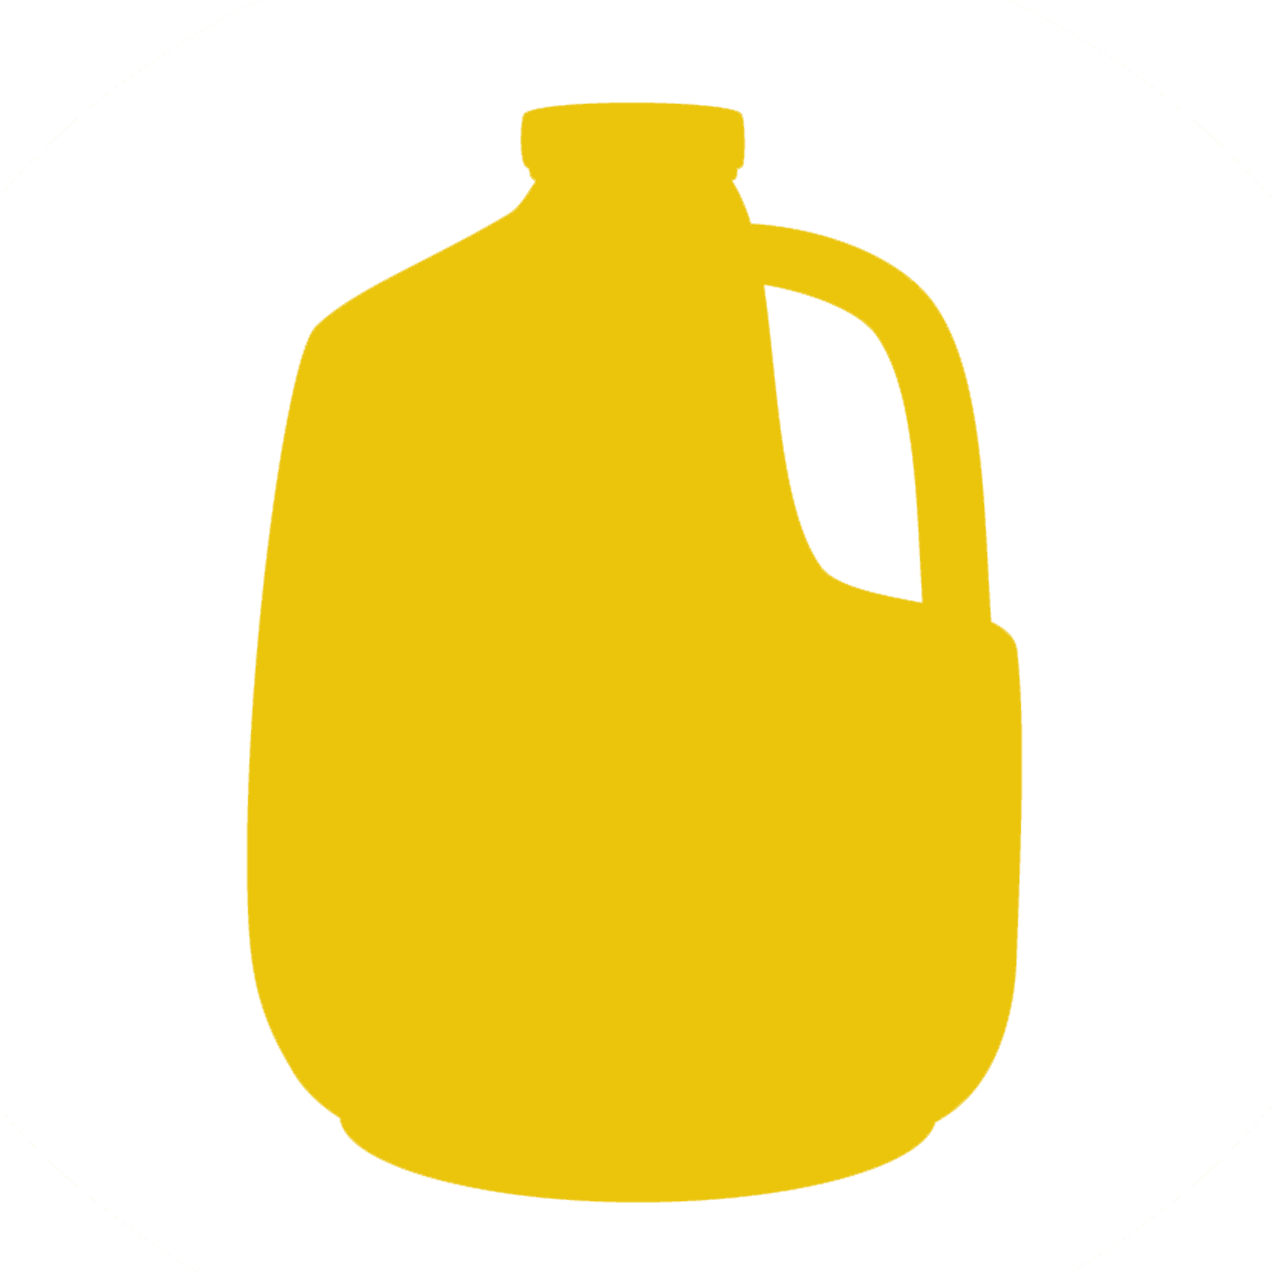 Gas clipart jug. Biofuels on emaze